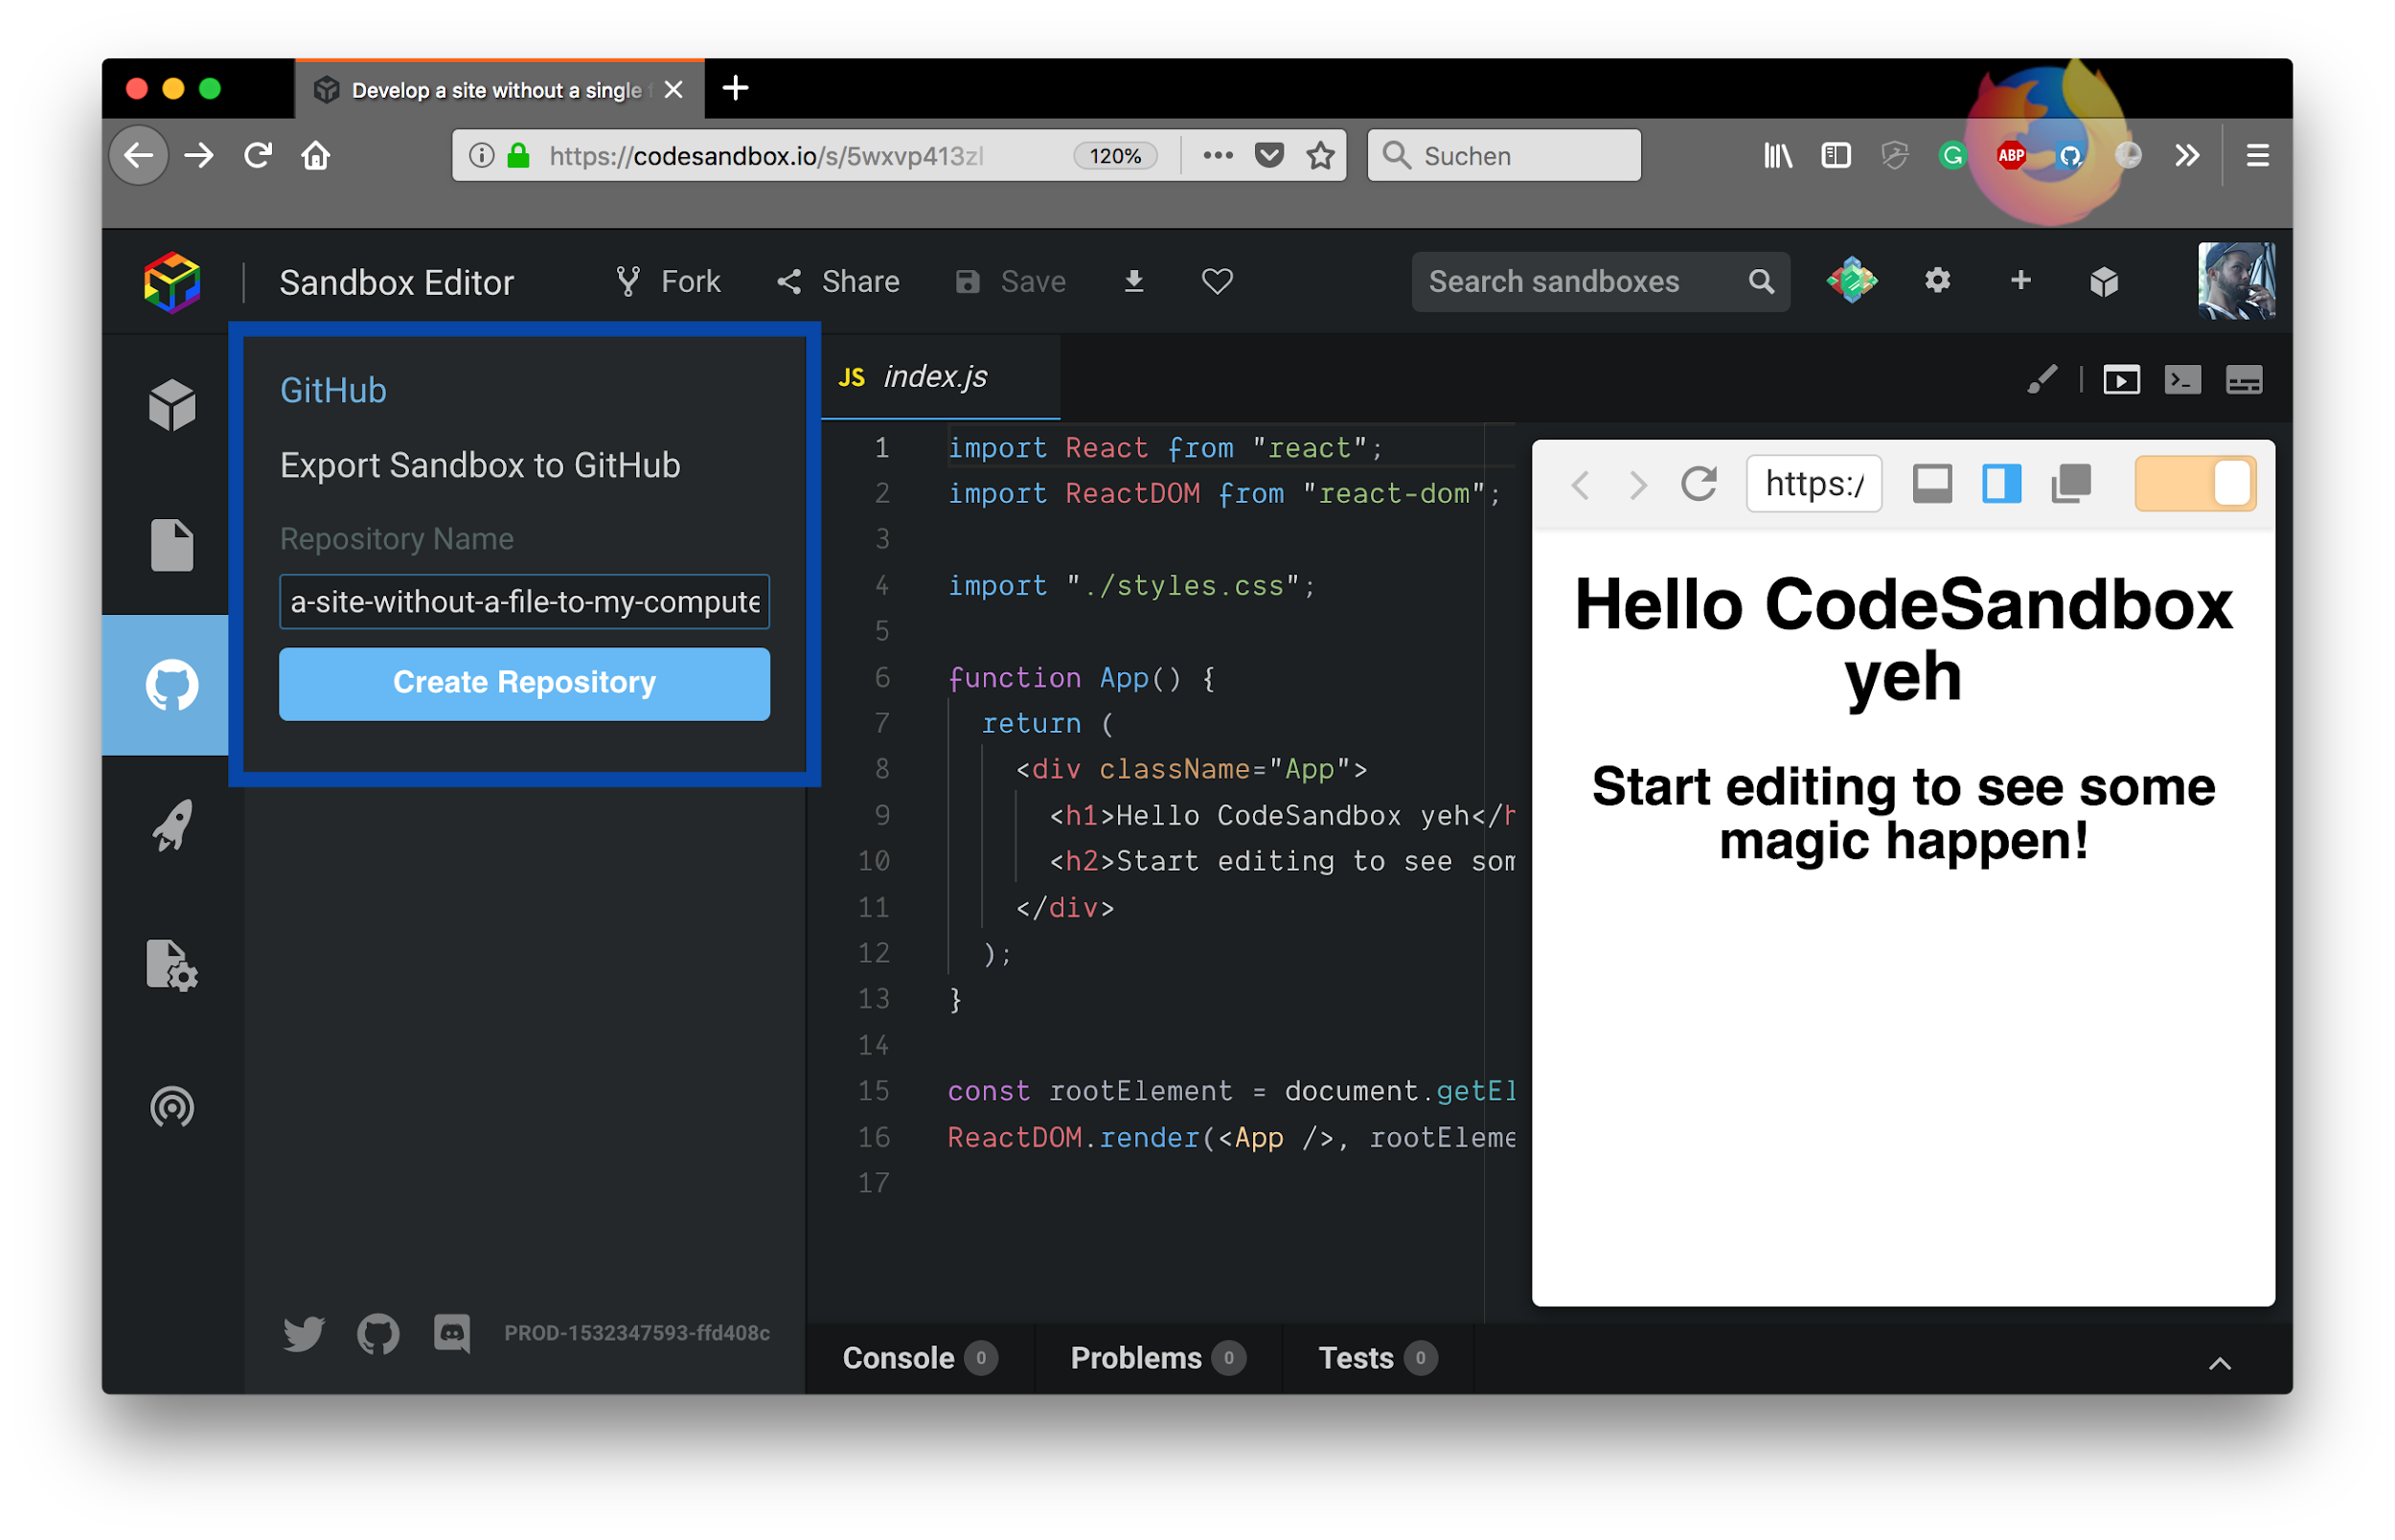 GitHub integration in CodeSandbox